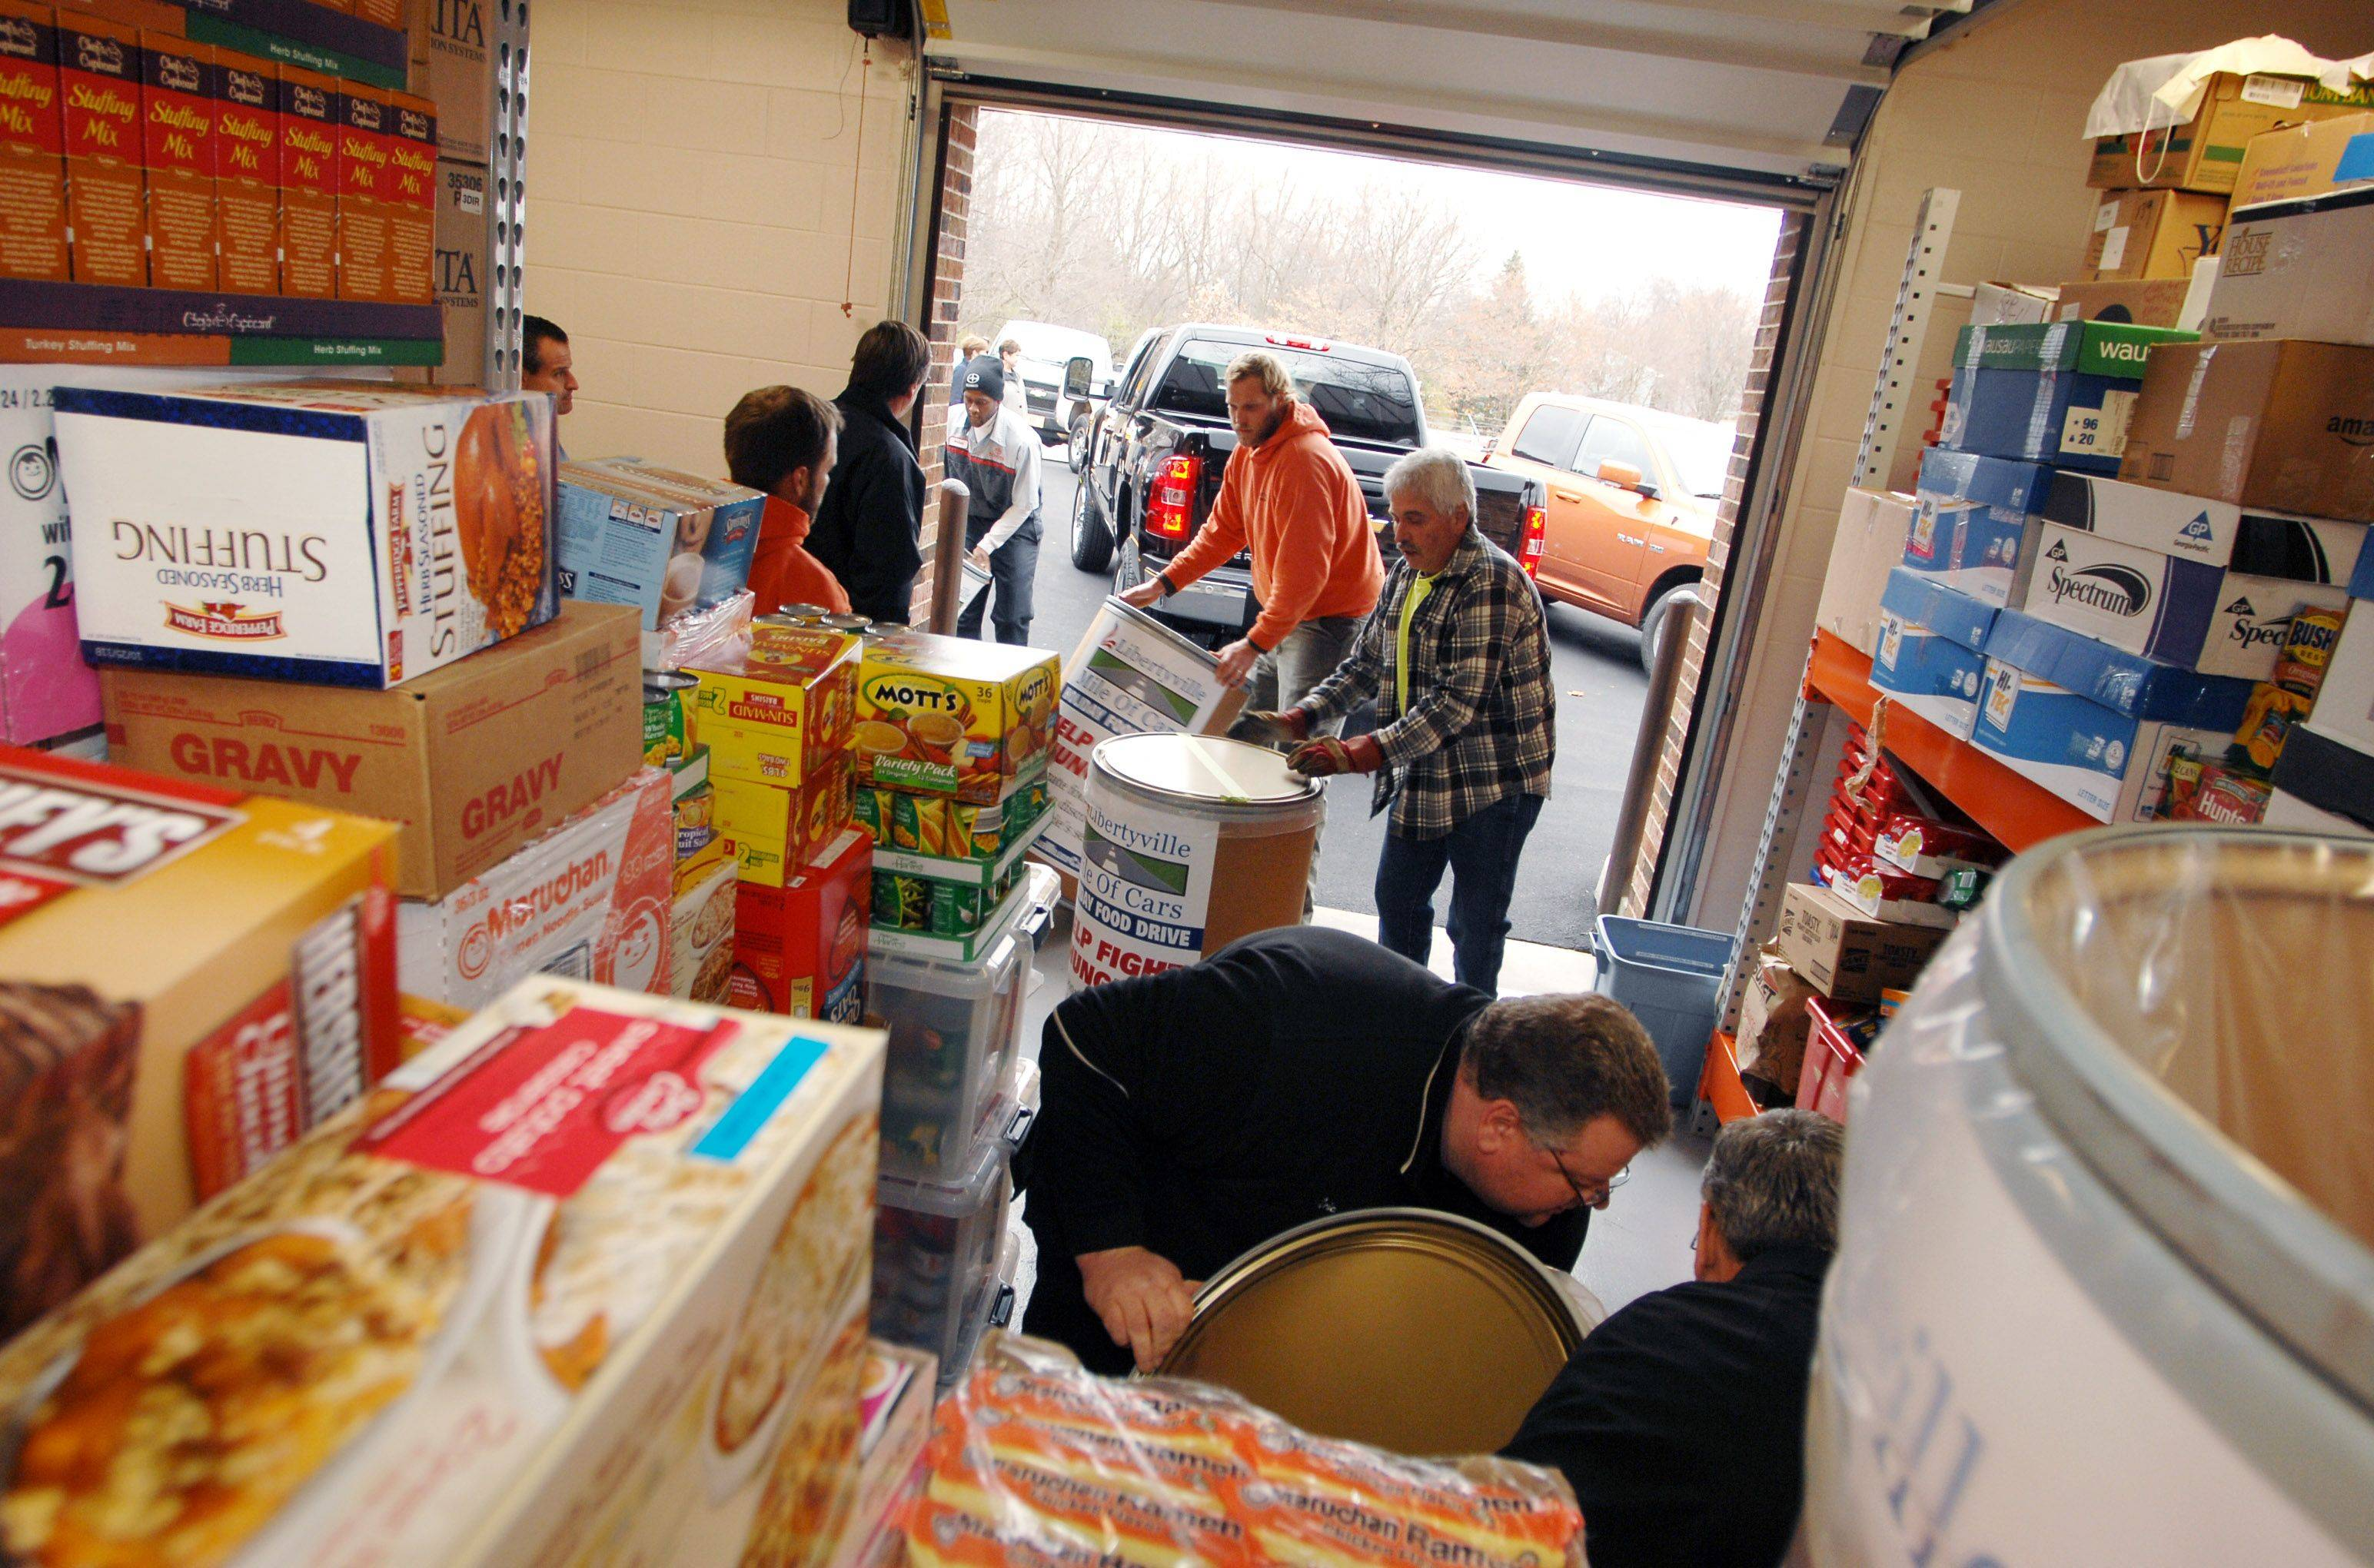 PAUL VALADE/pvalade@dailyherald.com The Libertyville Township Food Pantry received food this week from a pair of local food drives. Township officials say they have enough goods for the winter, but other township pantries say they're struggling to keep up with demand.